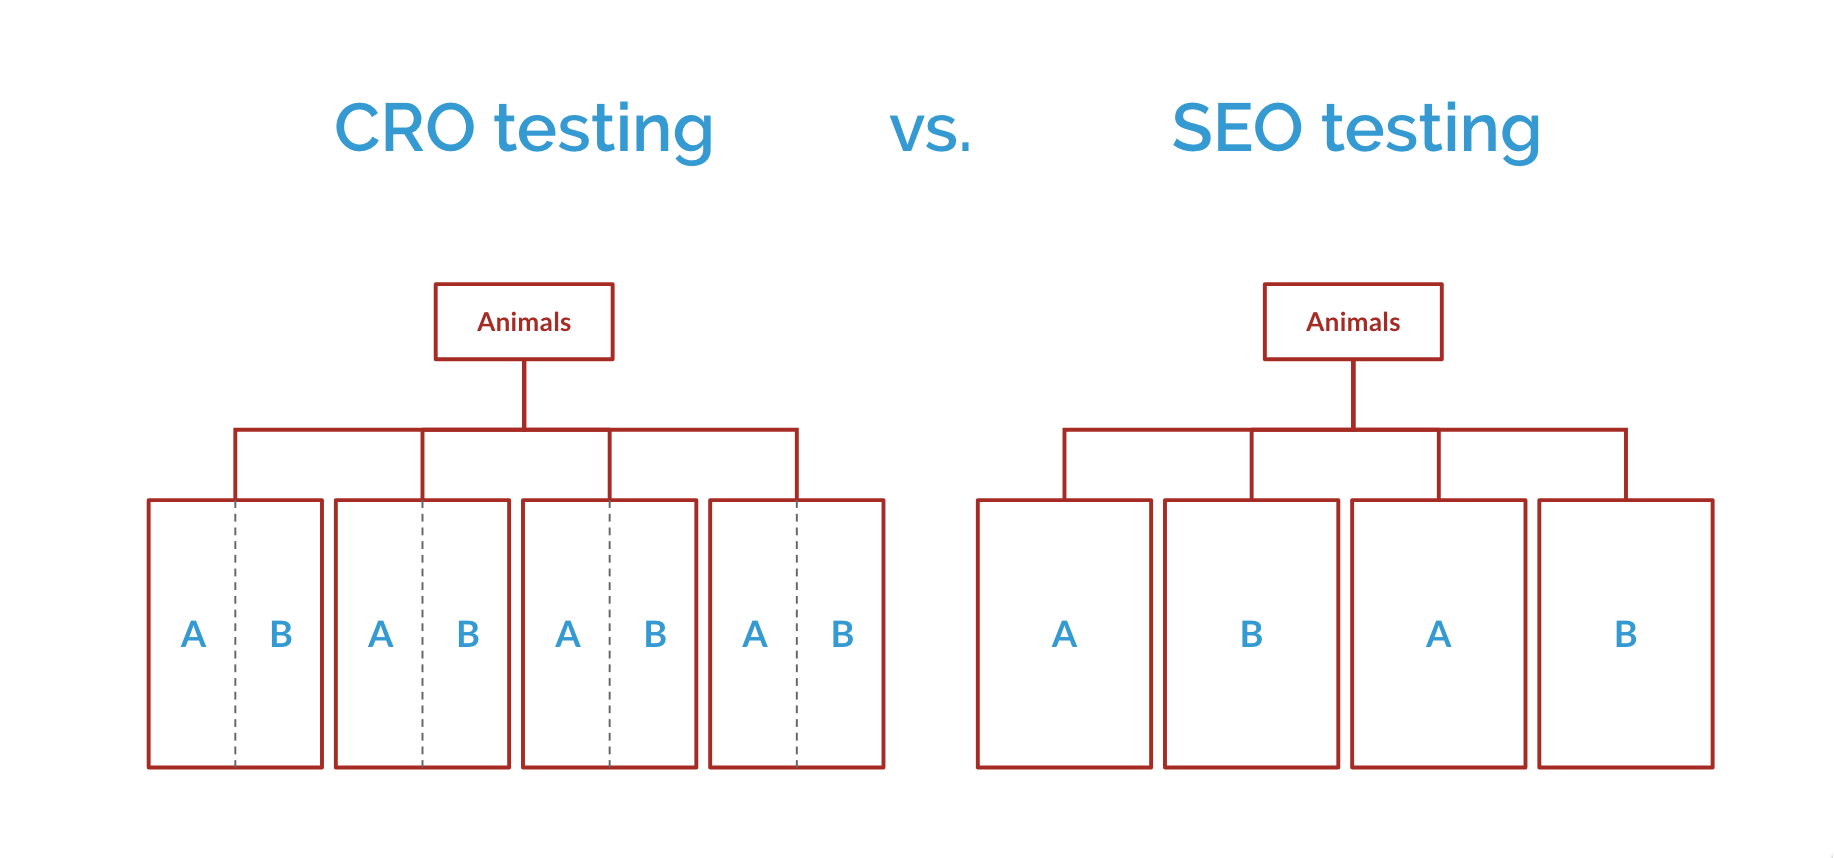 Announcing Full-Funnel Testing - testing SEO and CRO at the same time